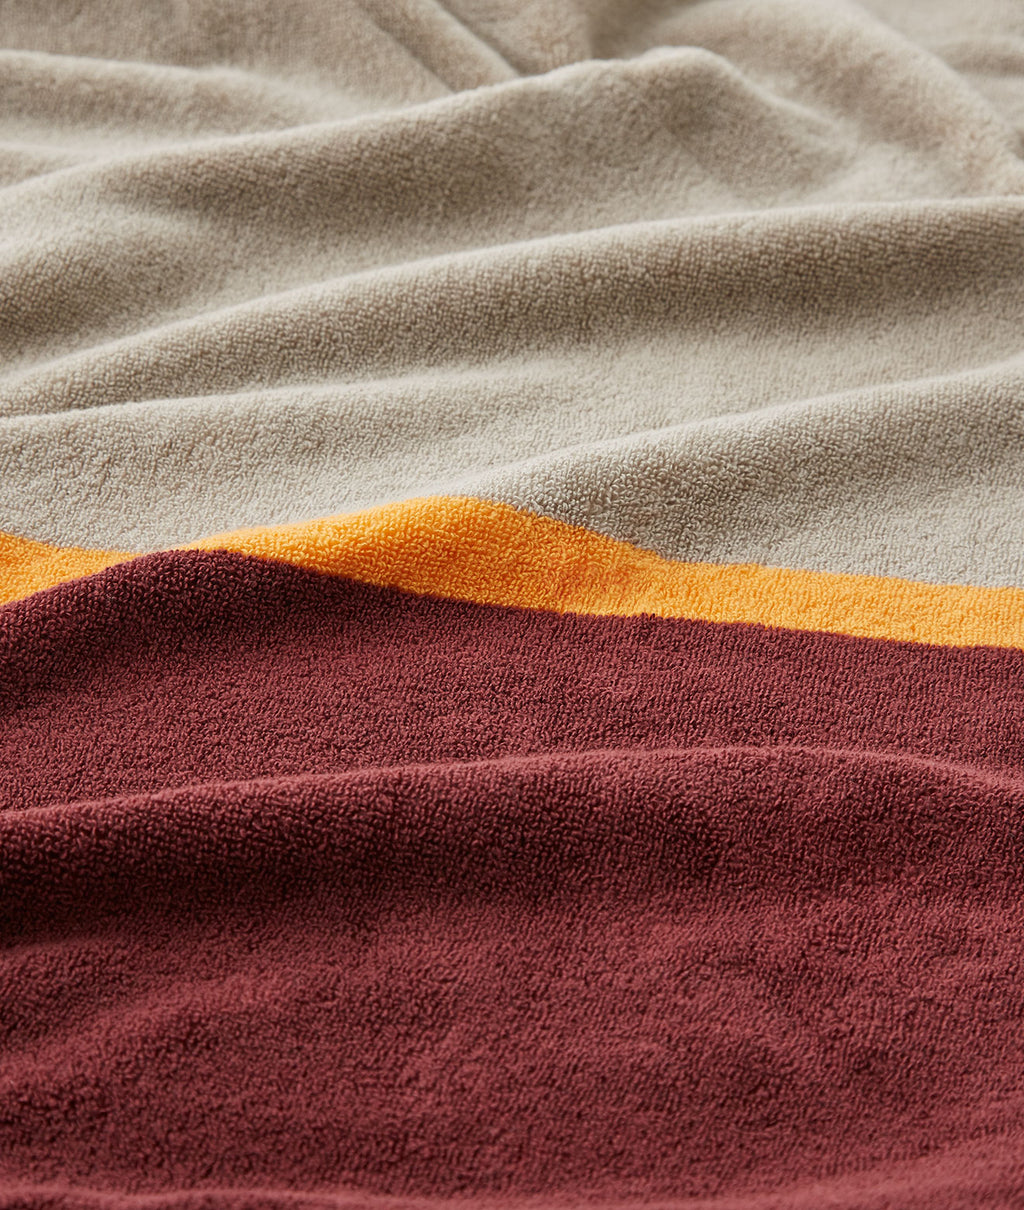 SALON TOWEL BATH SHEET / BEIGE × BURGUNDY